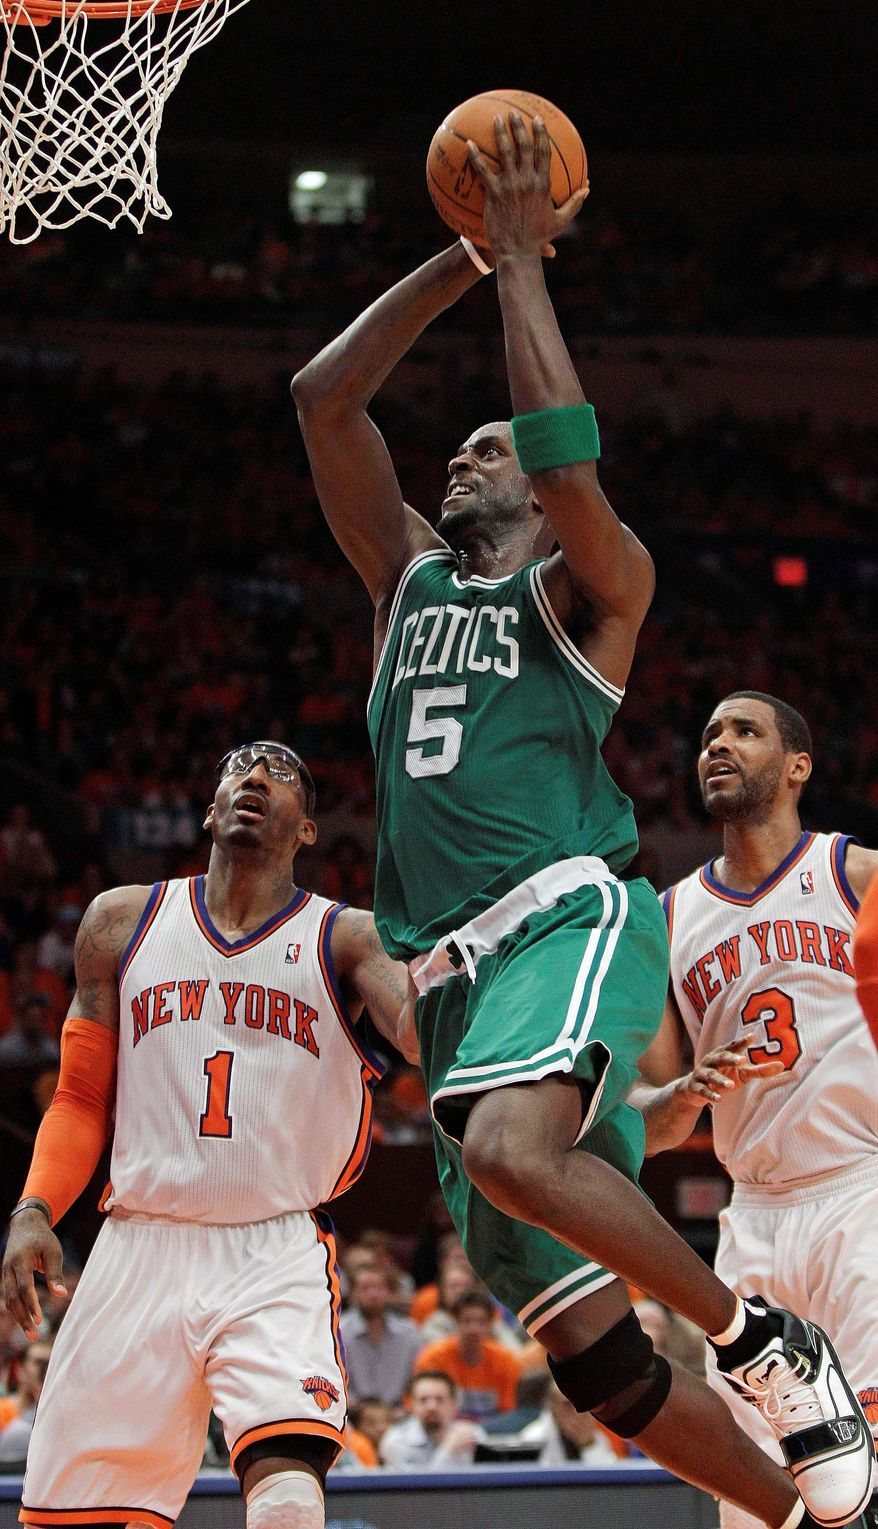 Boston forward Kevin Garnett splits New York forwards Amar'e Stoudemire (1) and Shawne Williams on a drive to the basket. Garnett totled 26 points and 10 rebounds in the Celtics' 101-89 win. (Associated Press)